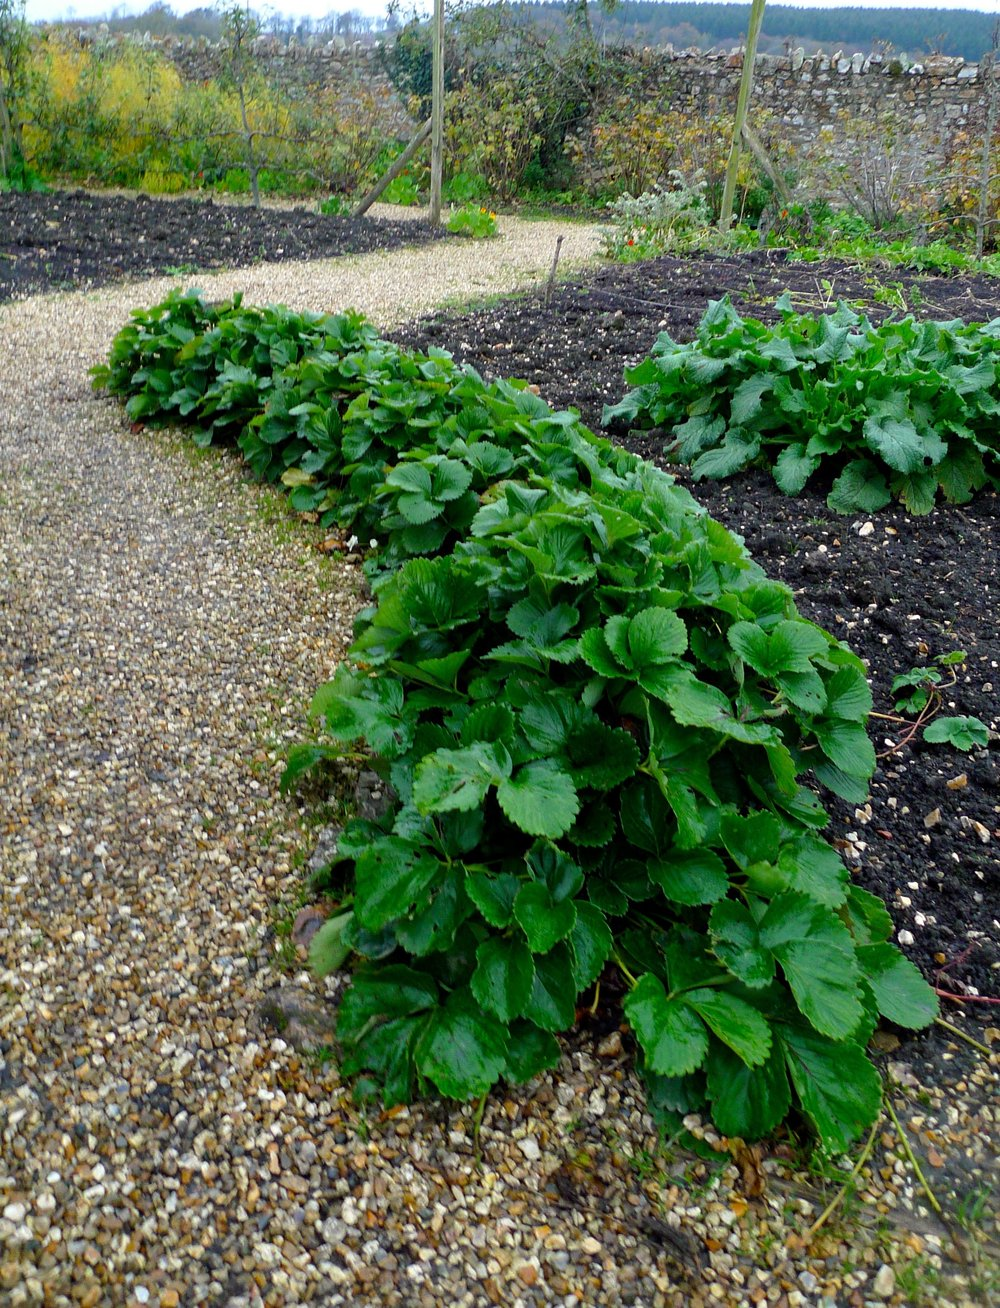 A border of strawberries - I knew it was a good idea and something I'm planning on my allotment - great idea HFW!